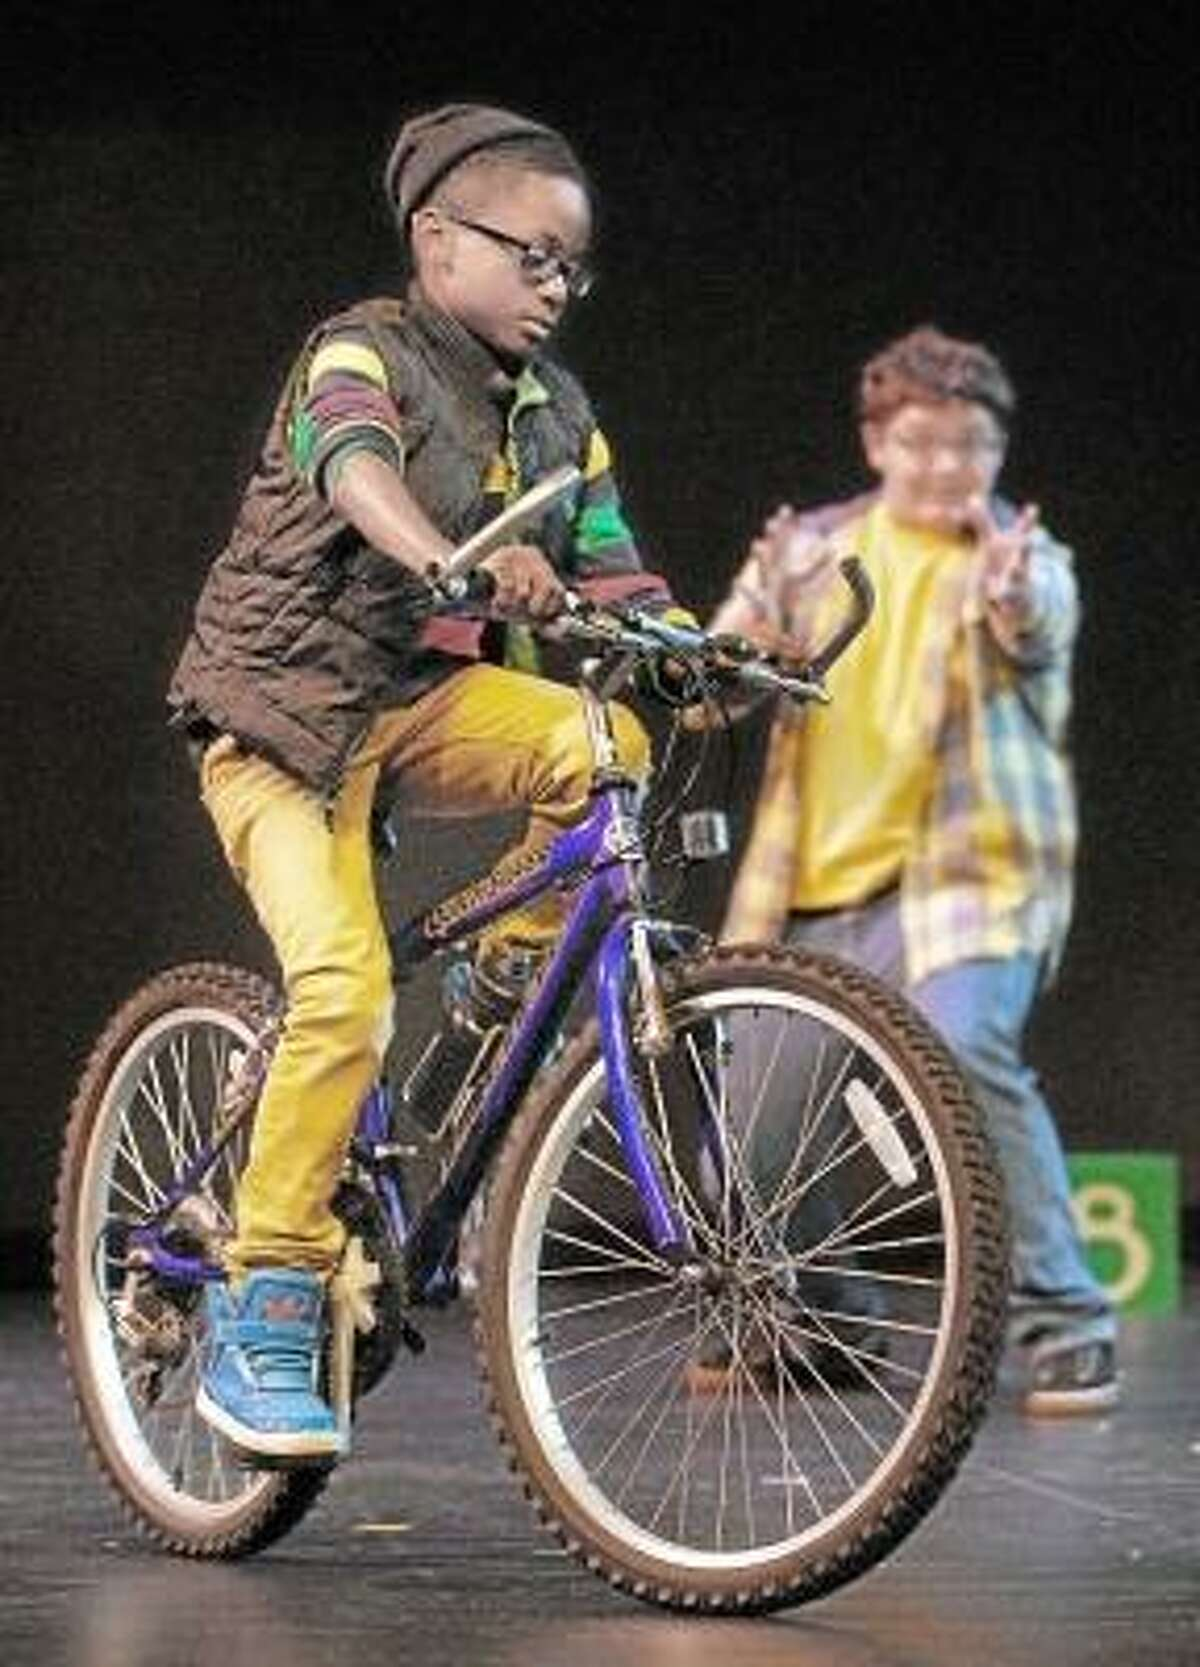 Catherine Avalone/The Middletown Press Owen, played by Mark Sumner, 15, right, teaches young Q Phipps played by D'Andrew Saunders, 10, to ride a bike during rehearsal Monday night of